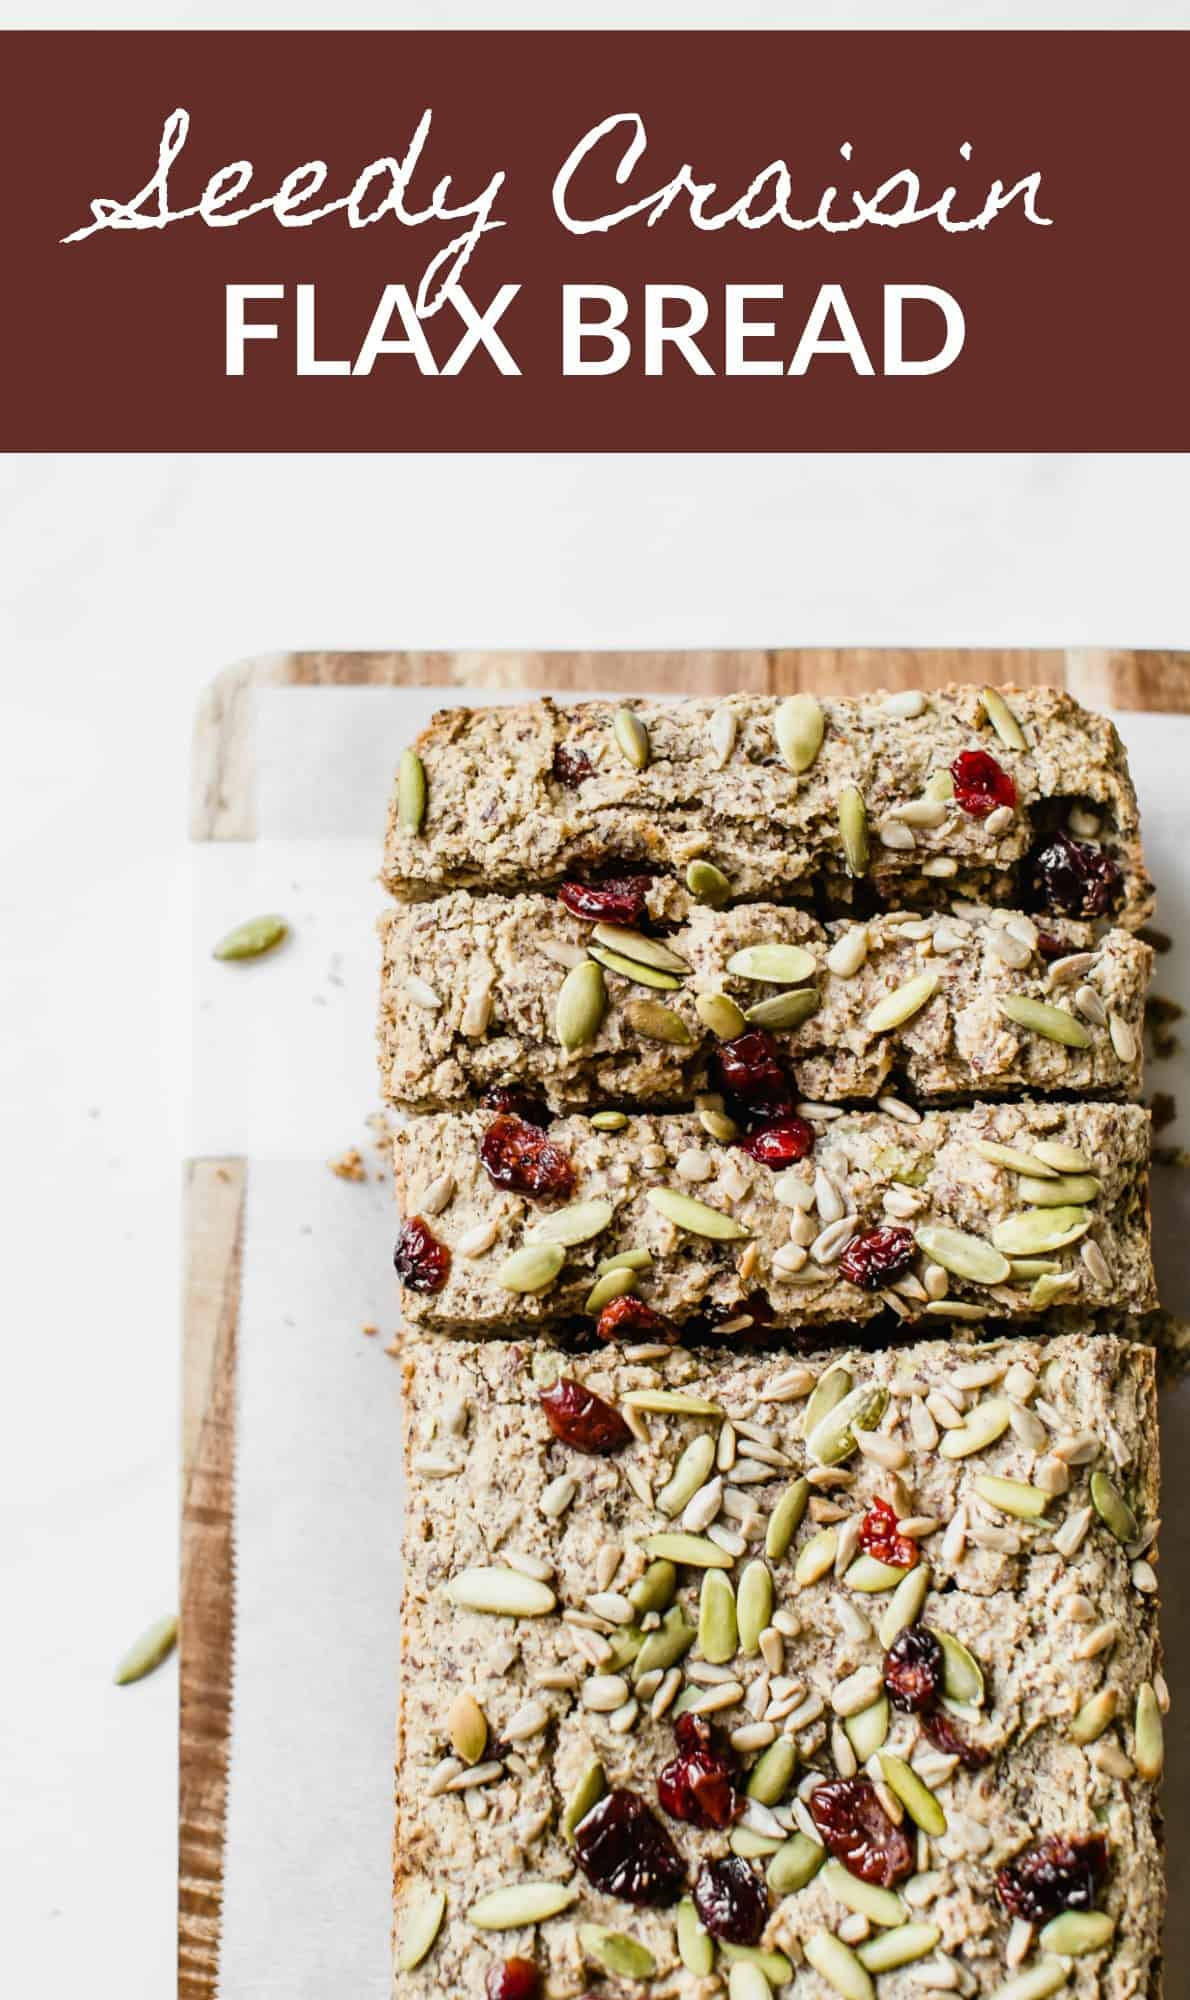 You'll love this low carb, gluten free, and paleo Seedy Craisin Flax Bread!! It's packed with goodies, so savory, and delicious with your morning coffee! thetoastedpinenut.com #thetoastedpinenut #glutenfree #lowcarb #pumpkinseeds #pumpkin #cranberry #flax #flaxmeal #bread #healthybread